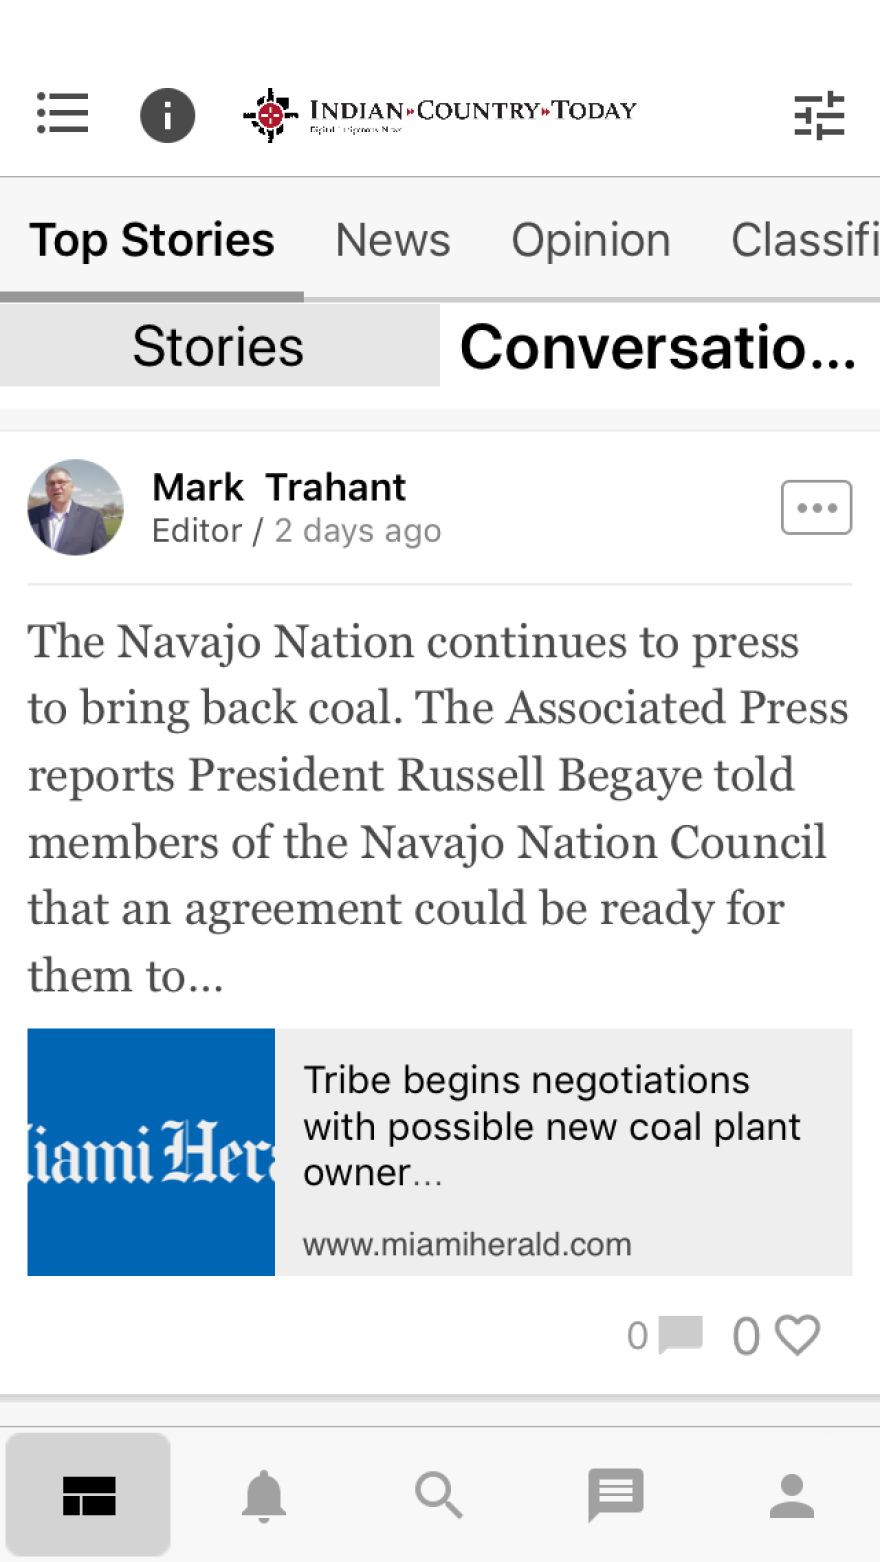 Screenshot of the Indian Country Today mobile app.